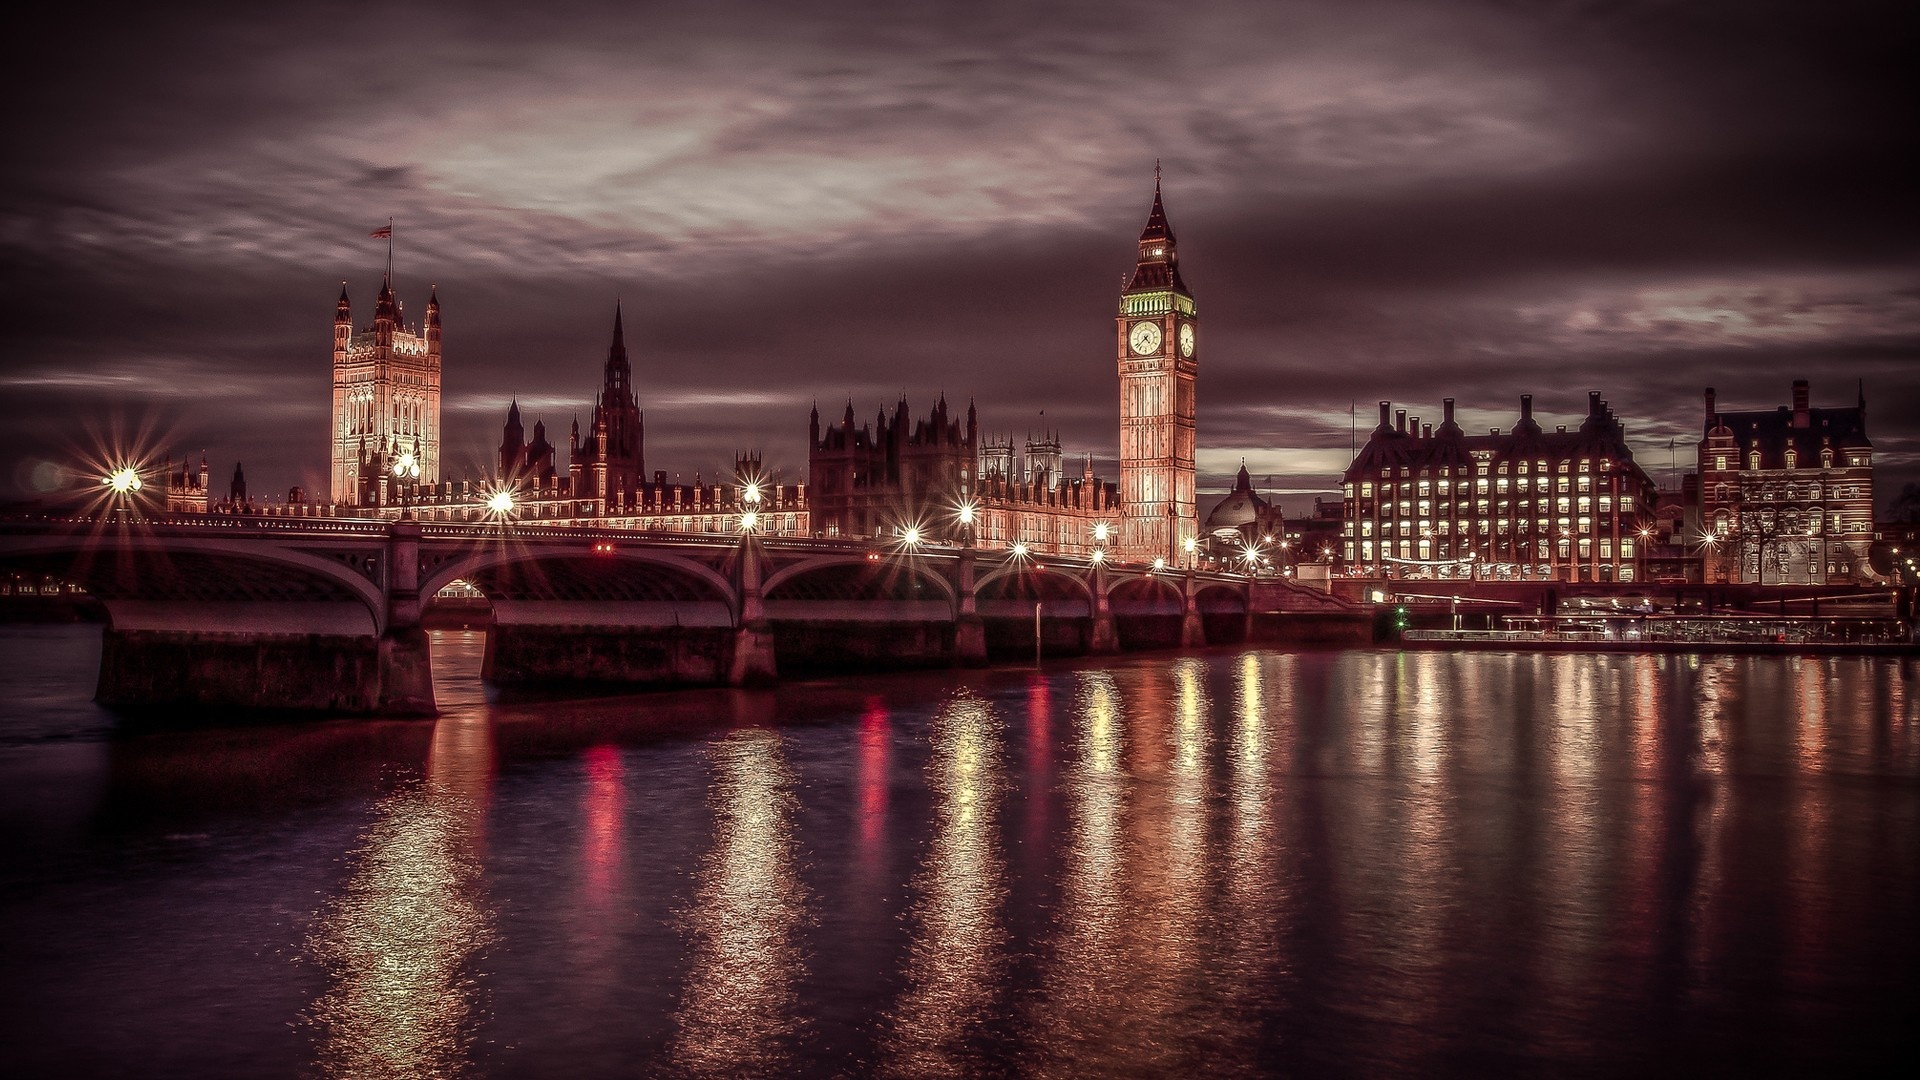 England Night Lights Wallpapers - 1920x1080 - 714255